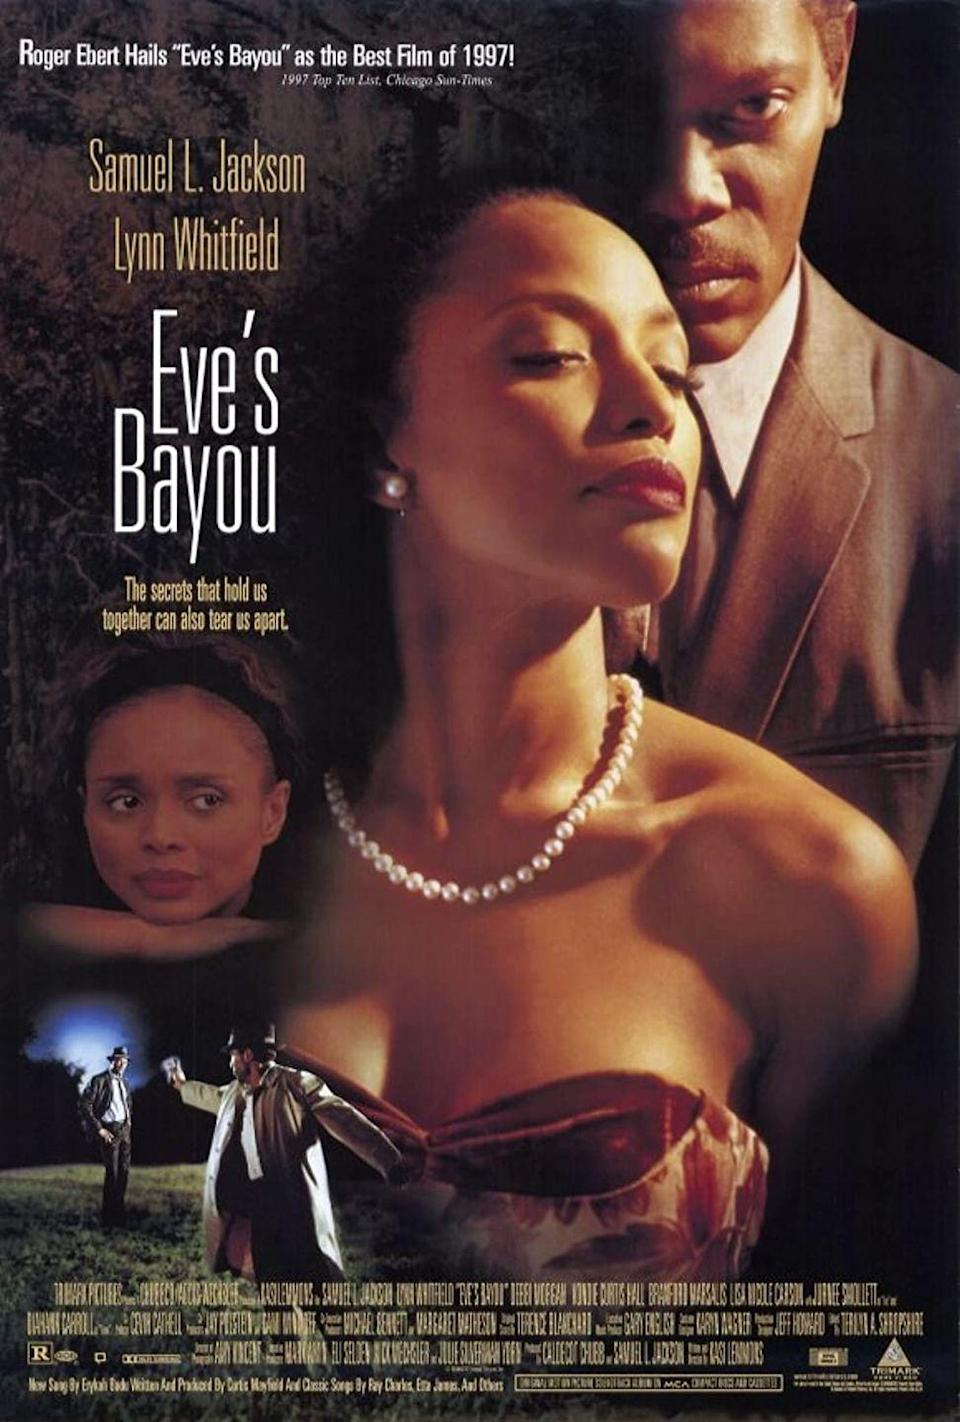 """<p>This 1997 southern gothic drama flick stars heavyweights like Samuel L. Jackson and Diahann Carroll, who plays a voodoo witch. In the film, 10-year-old Eve sees something she wasn't meant to see that reveals secrets and lies within her affluent, prominent family.<br></p><p><a class=""""link rapid-noclick-resp"""" href=""""https://www.amazon.com/Eves-Bayou-Samuel-L-Jackson/dp/B000LQASBE?tag=syn-yahoo-20&ascsubtag=%5Bartid%7C10070.g.37360837%5Bsrc%7Cyahoo-us"""" rel=""""nofollow noopener"""" target=""""_blank"""" data-ylk=""""slk:WATCH NOW"""">WATCH NOW</a></p>"""